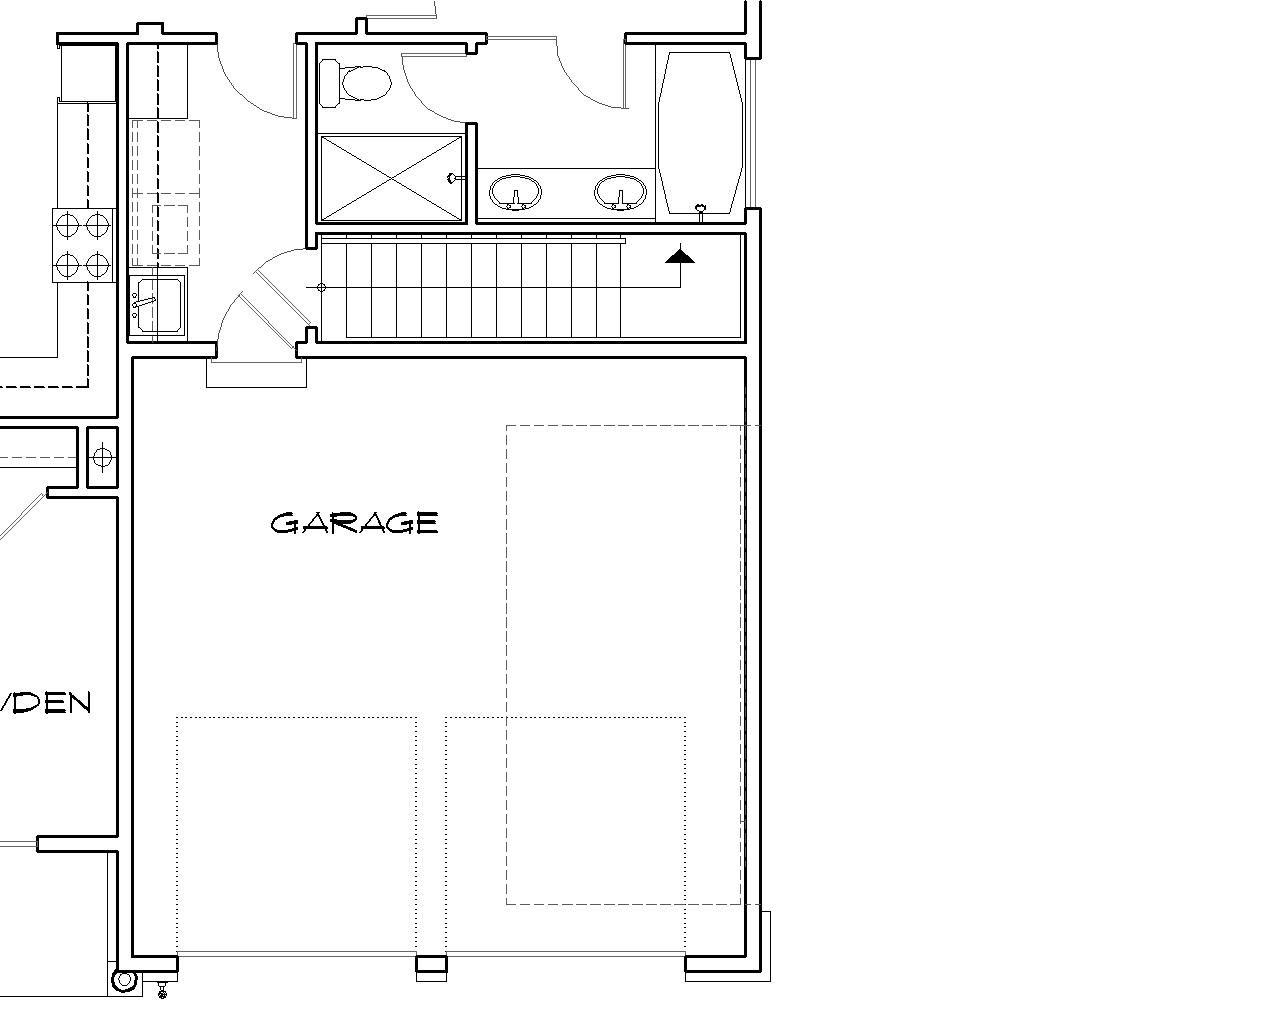 Basement Stair Designs Plans basement stair location image of featured house plan bhg - 2432